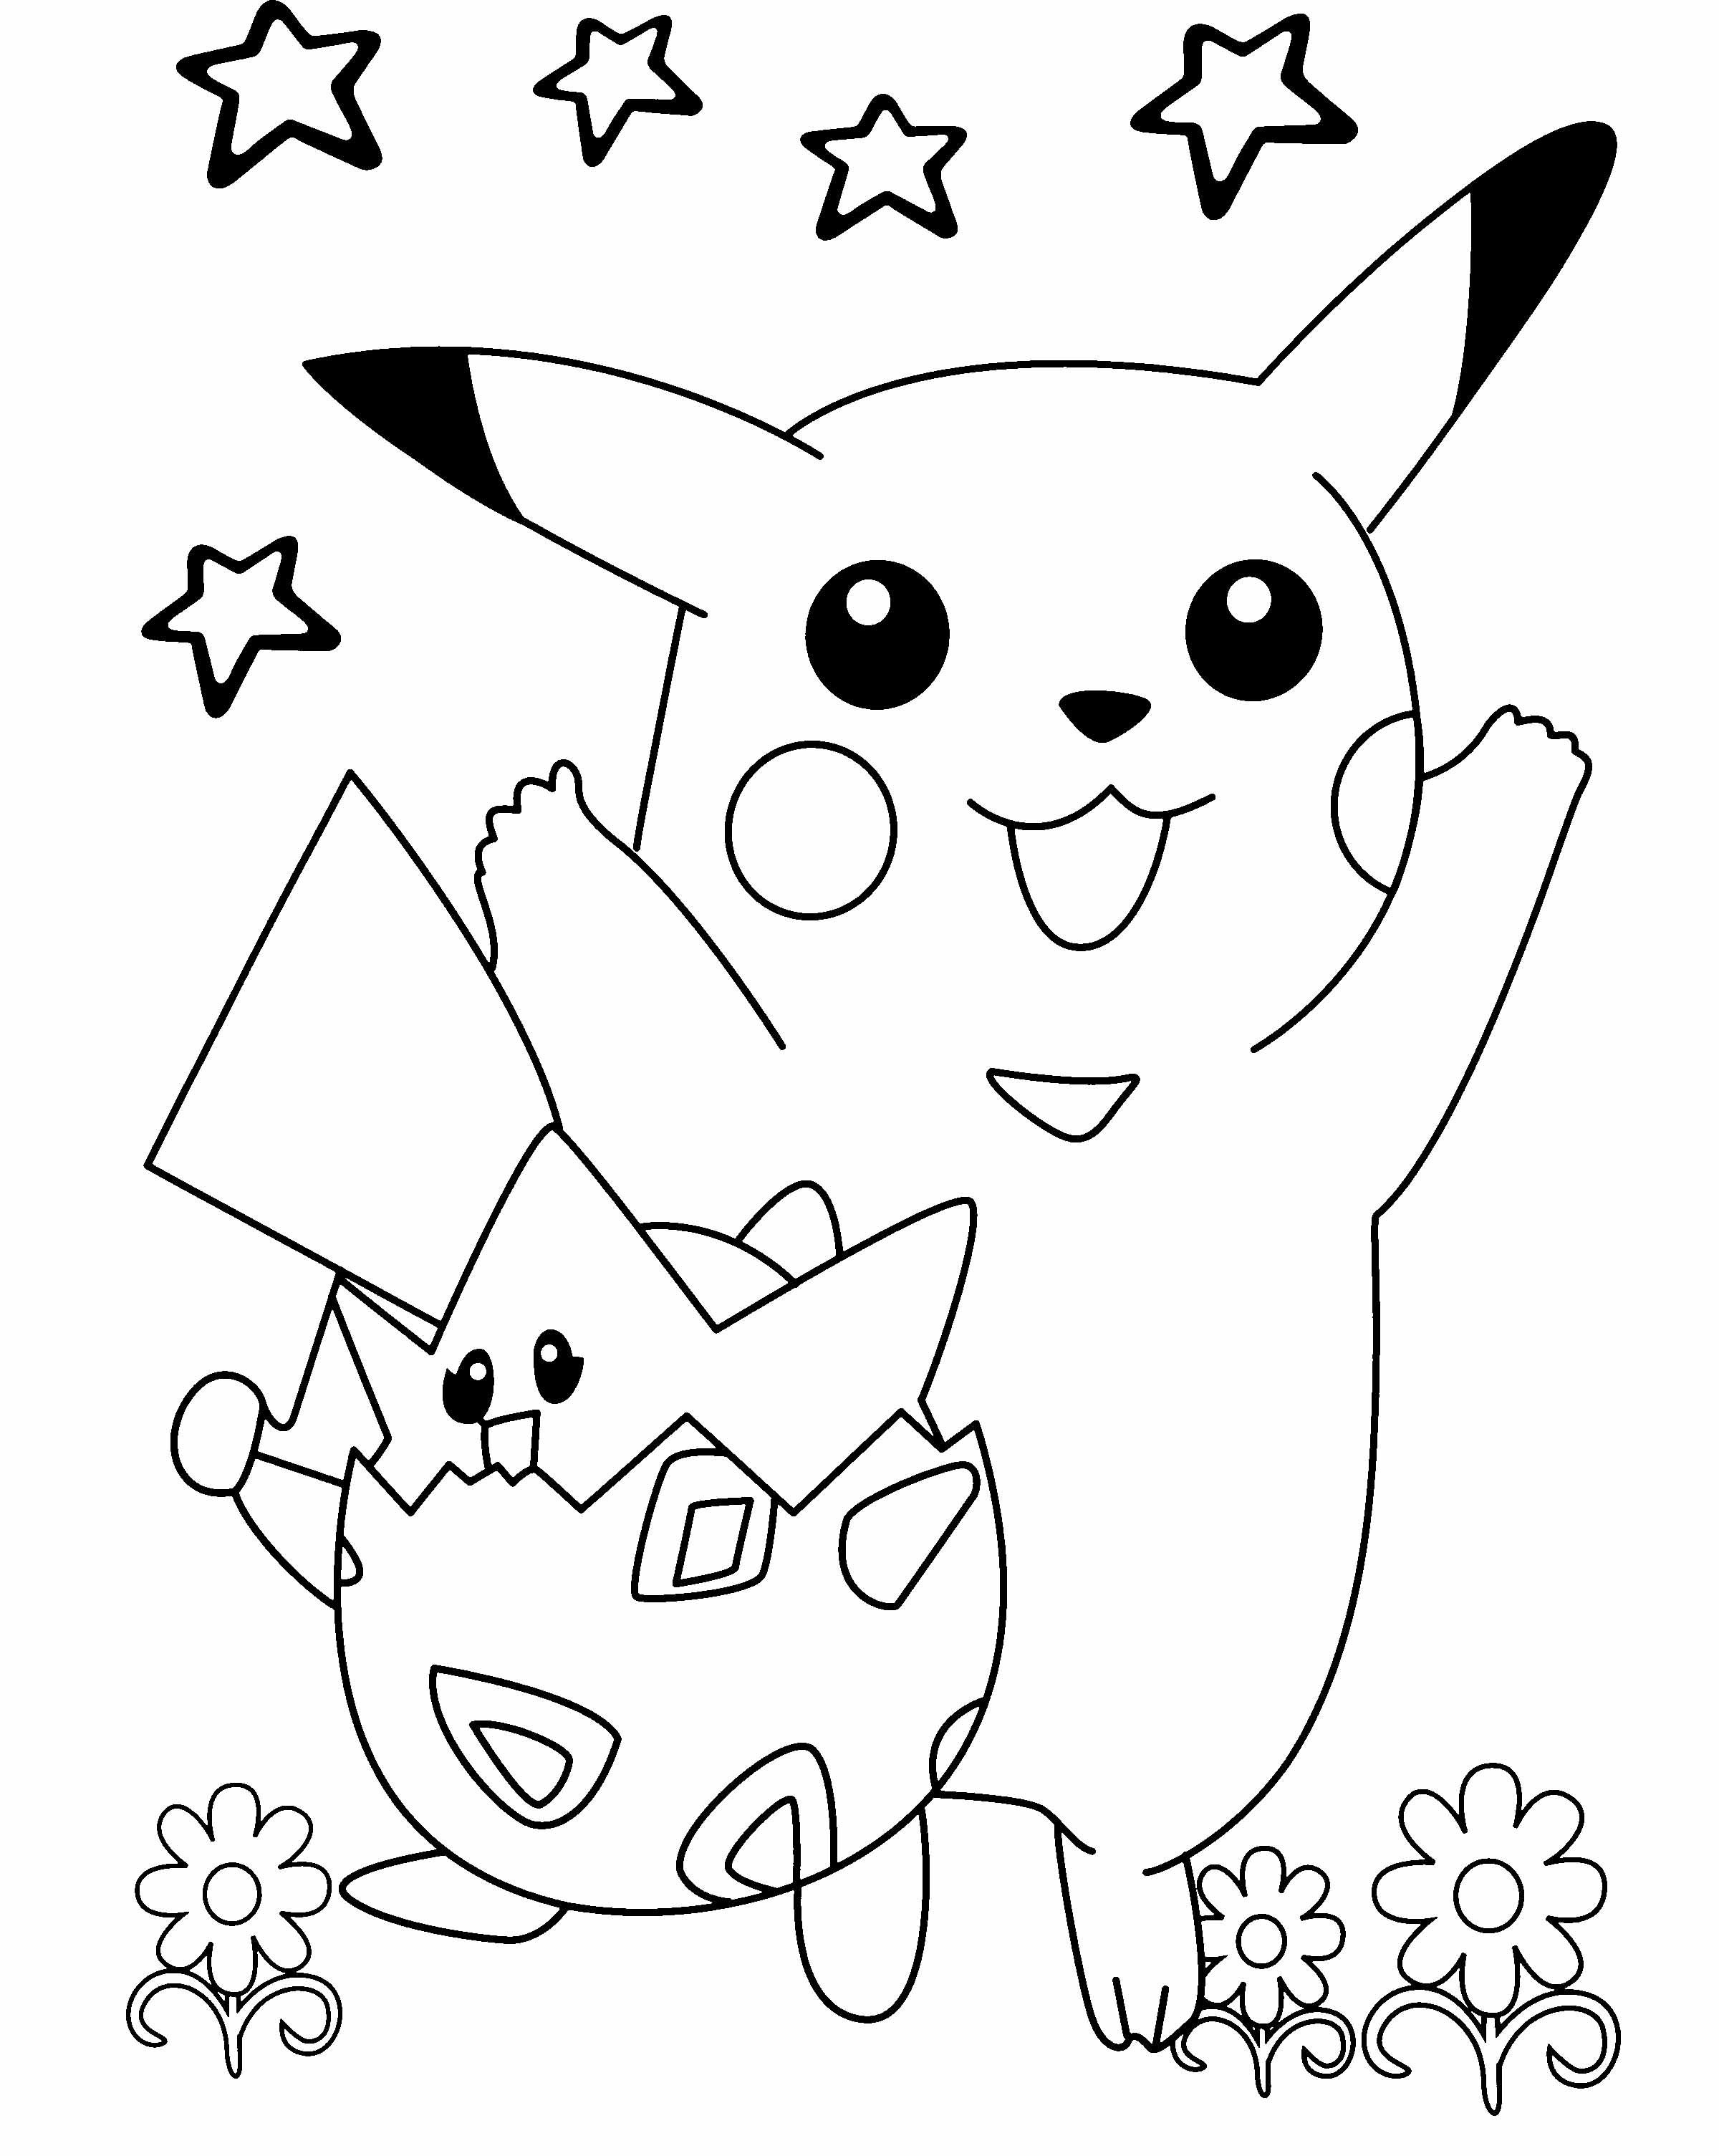 Pokemon Pikachu Playing In The Flower Garden Coloring Page